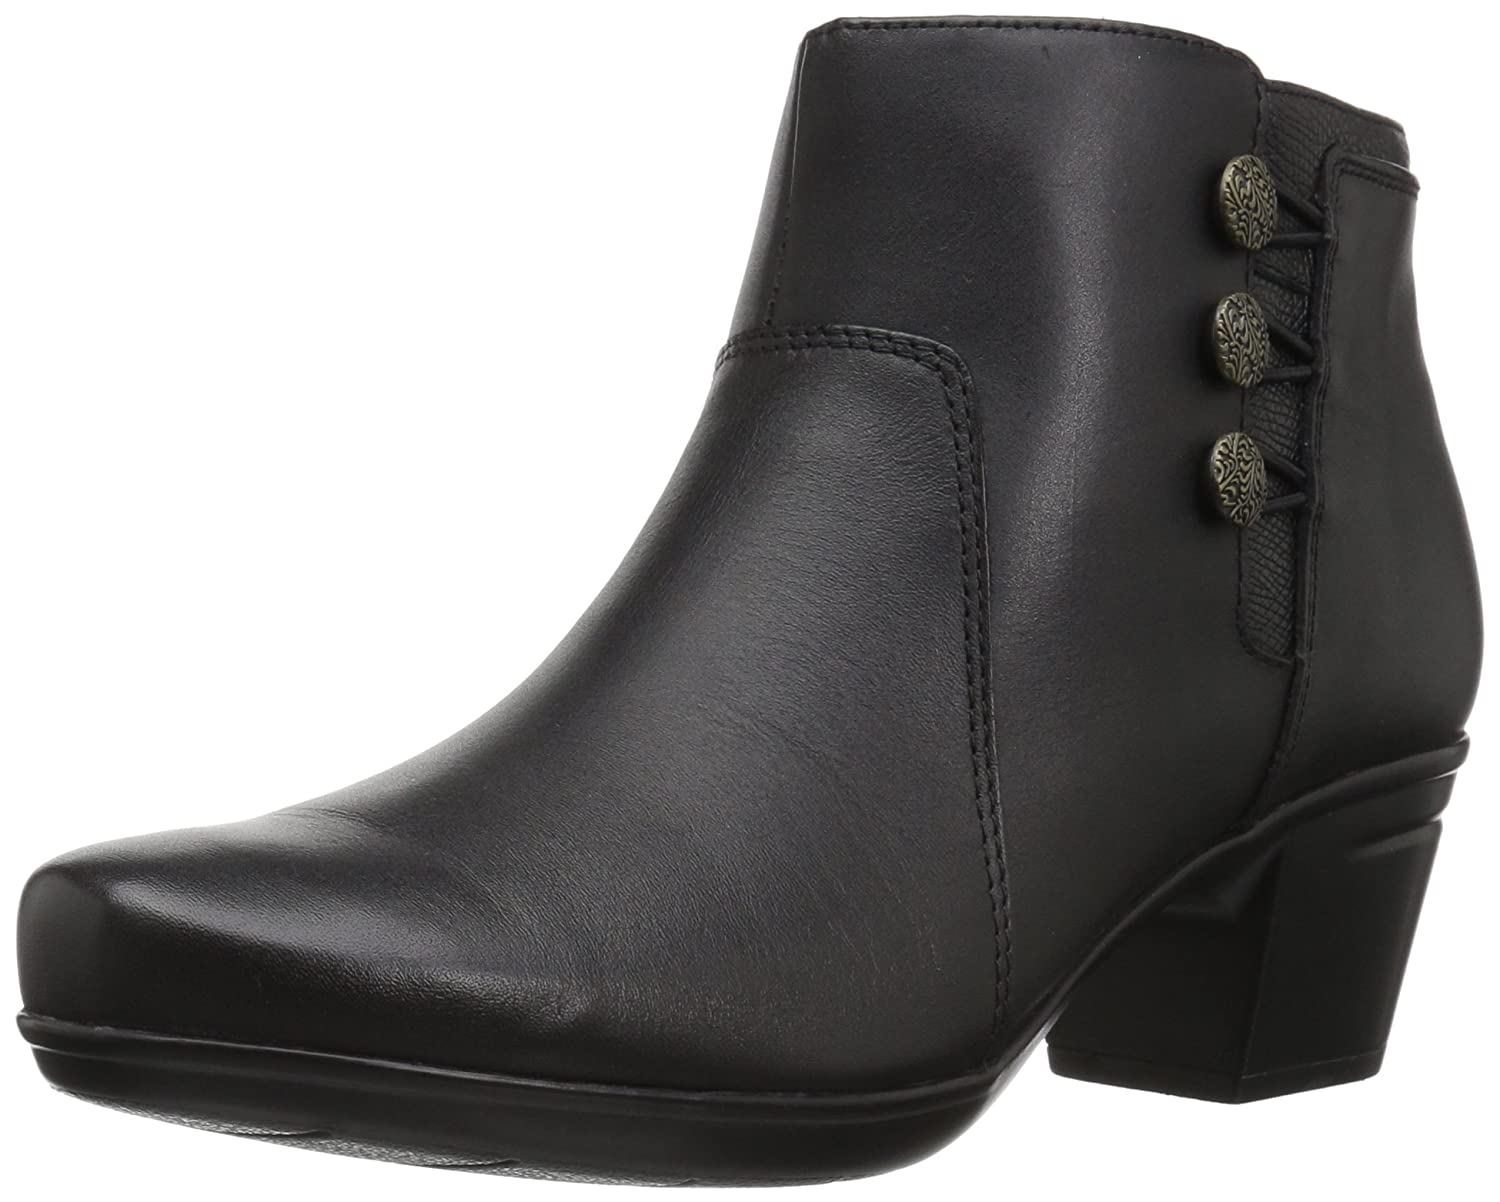 CLARKS Women's Emslie Monet Ankle Bootie B01N2Z1TXG 11 W US|Black Leather